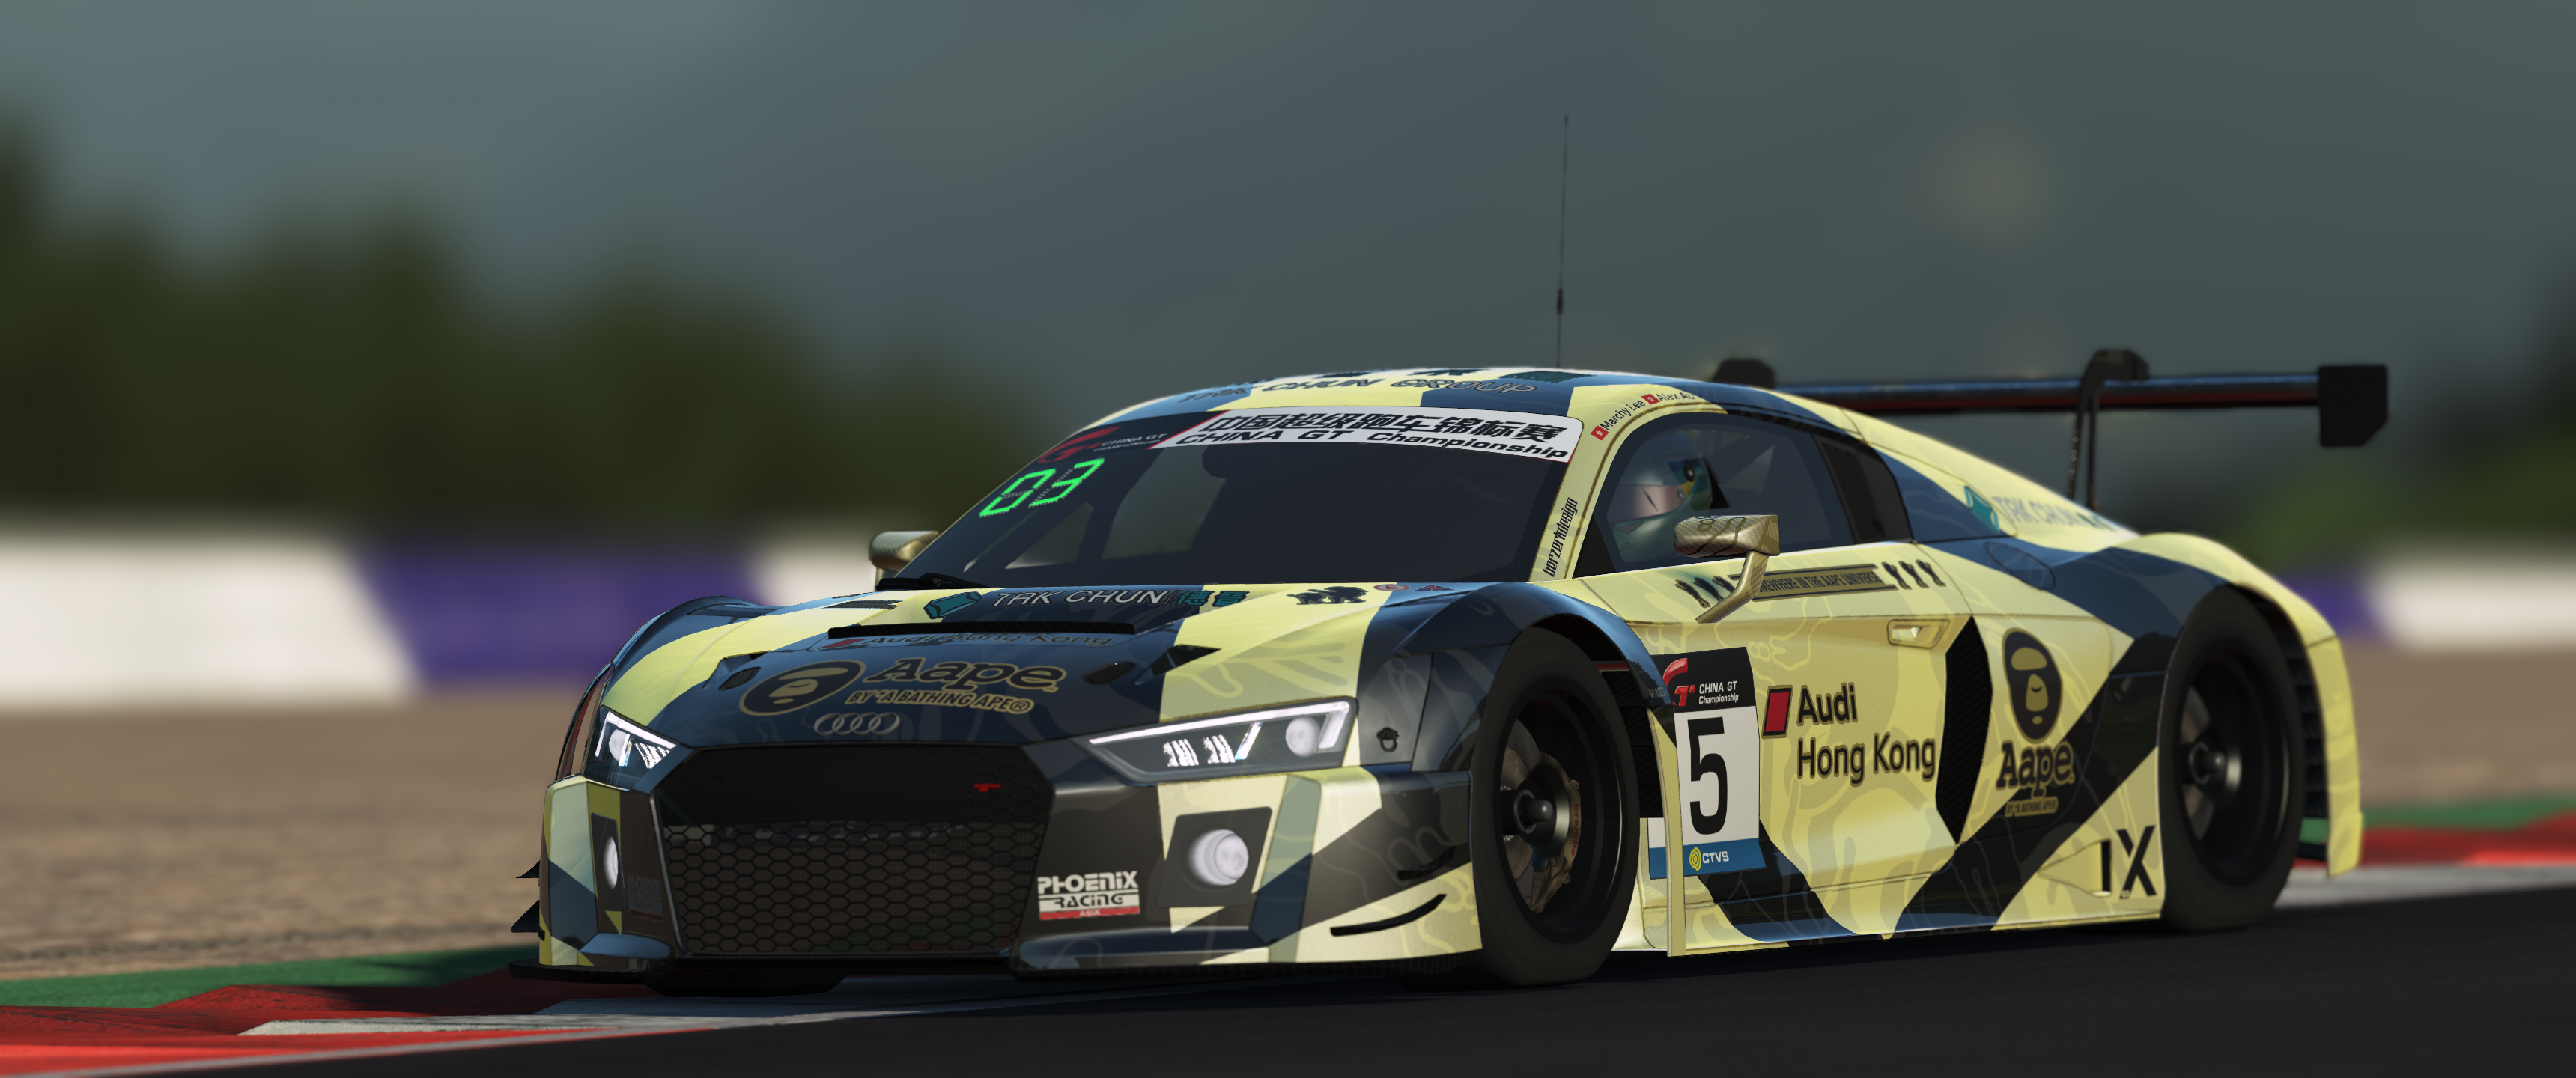 rFactor2 2019-03-02 02-07-40-21.png